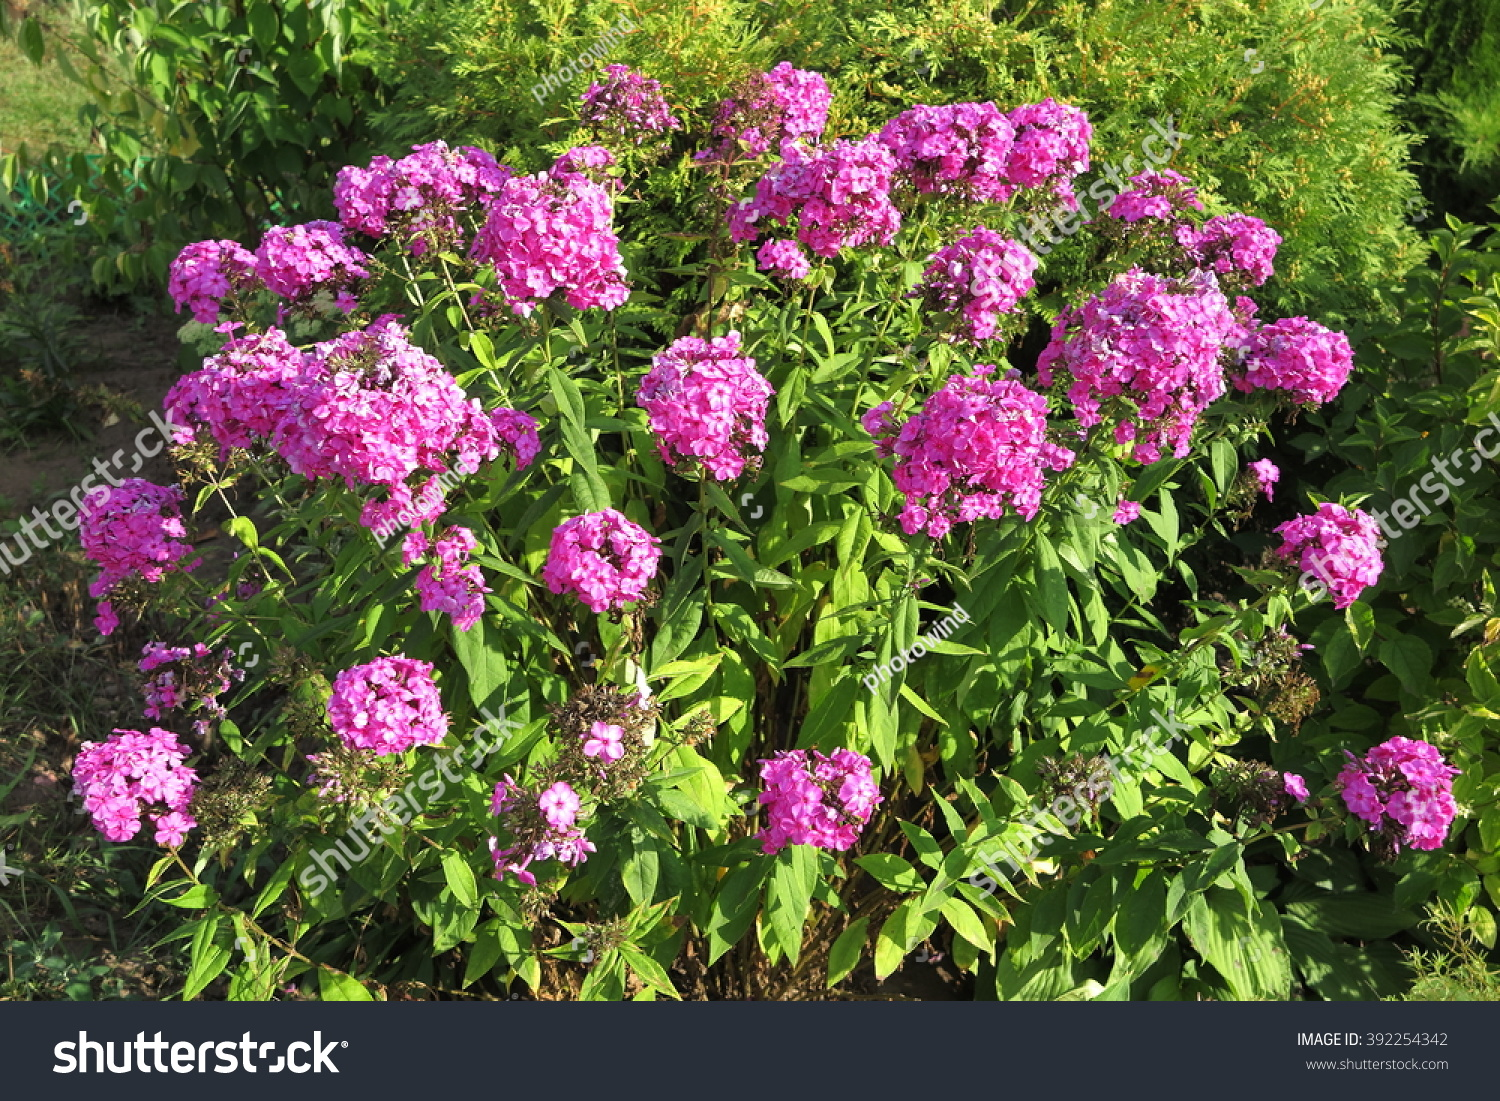 Blooming Cultivar Garden Phlox Phlox Paniculata Stock Photo